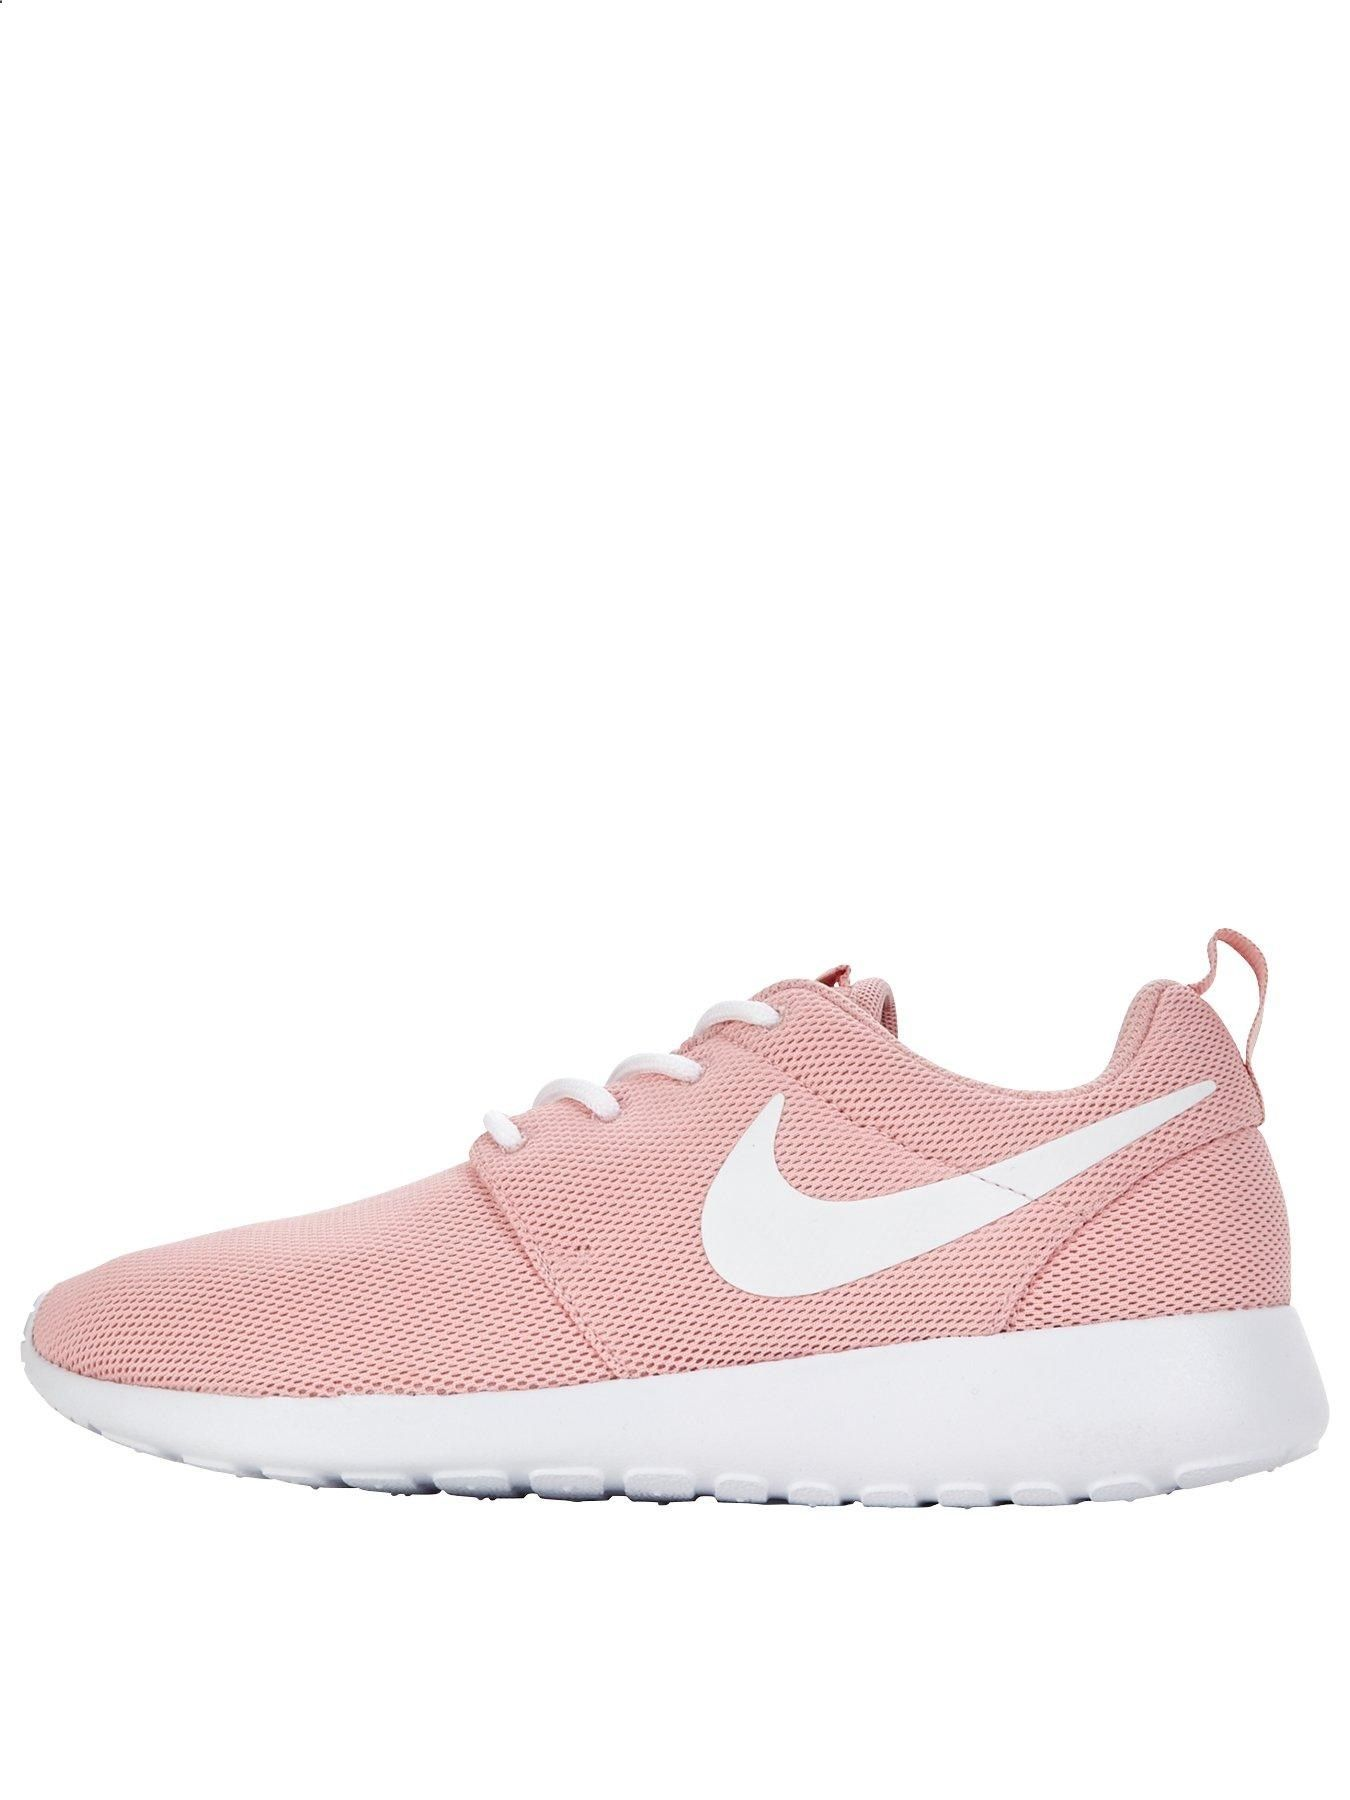 68e9780f15e70 Nike Roshe One - Pink White Treat your feet to the pretty pink hue and plush  cushioning of the Roshe One by Nike. Lightweight and breathable